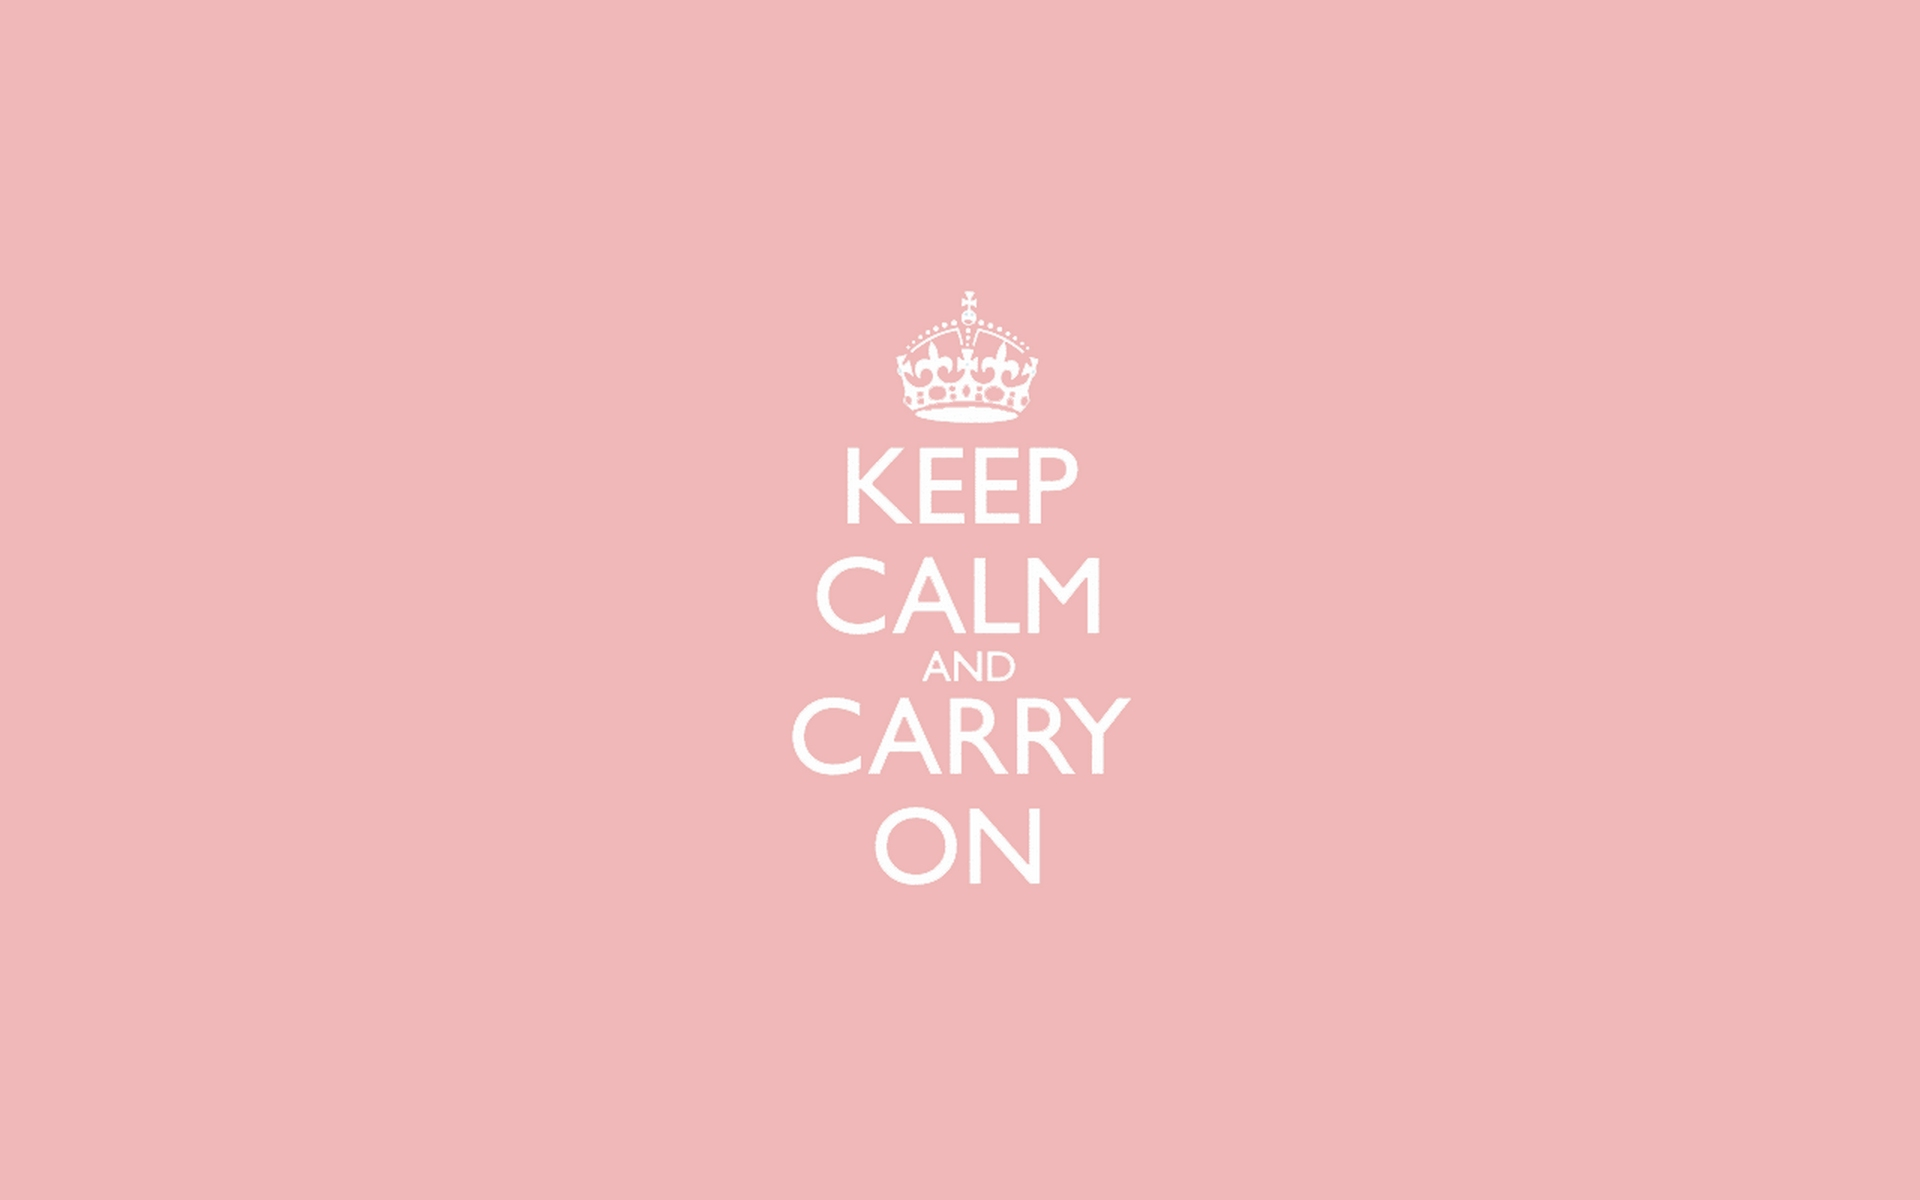 Free Cute Quote Wallpapers 9 Hd Keep Calm And Carry On Wallpapers